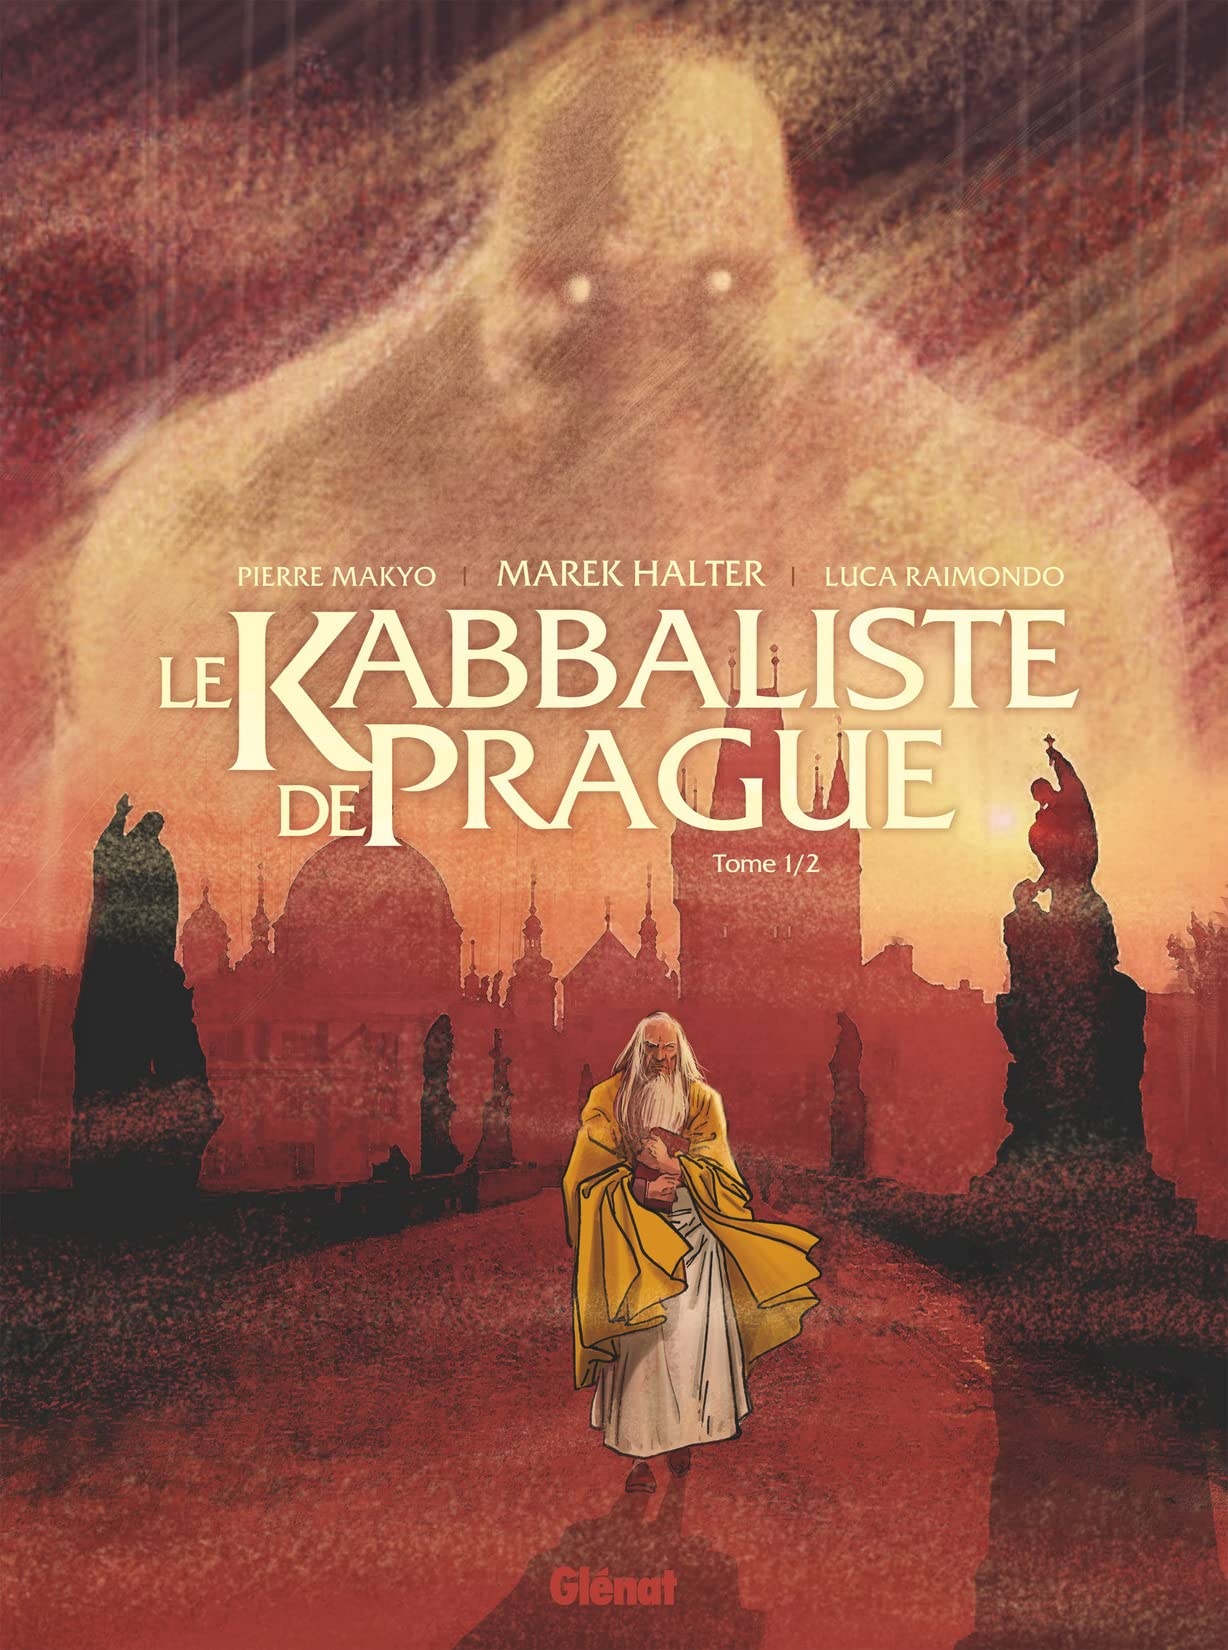 Le Kabbaliste de Prague Vol. 1